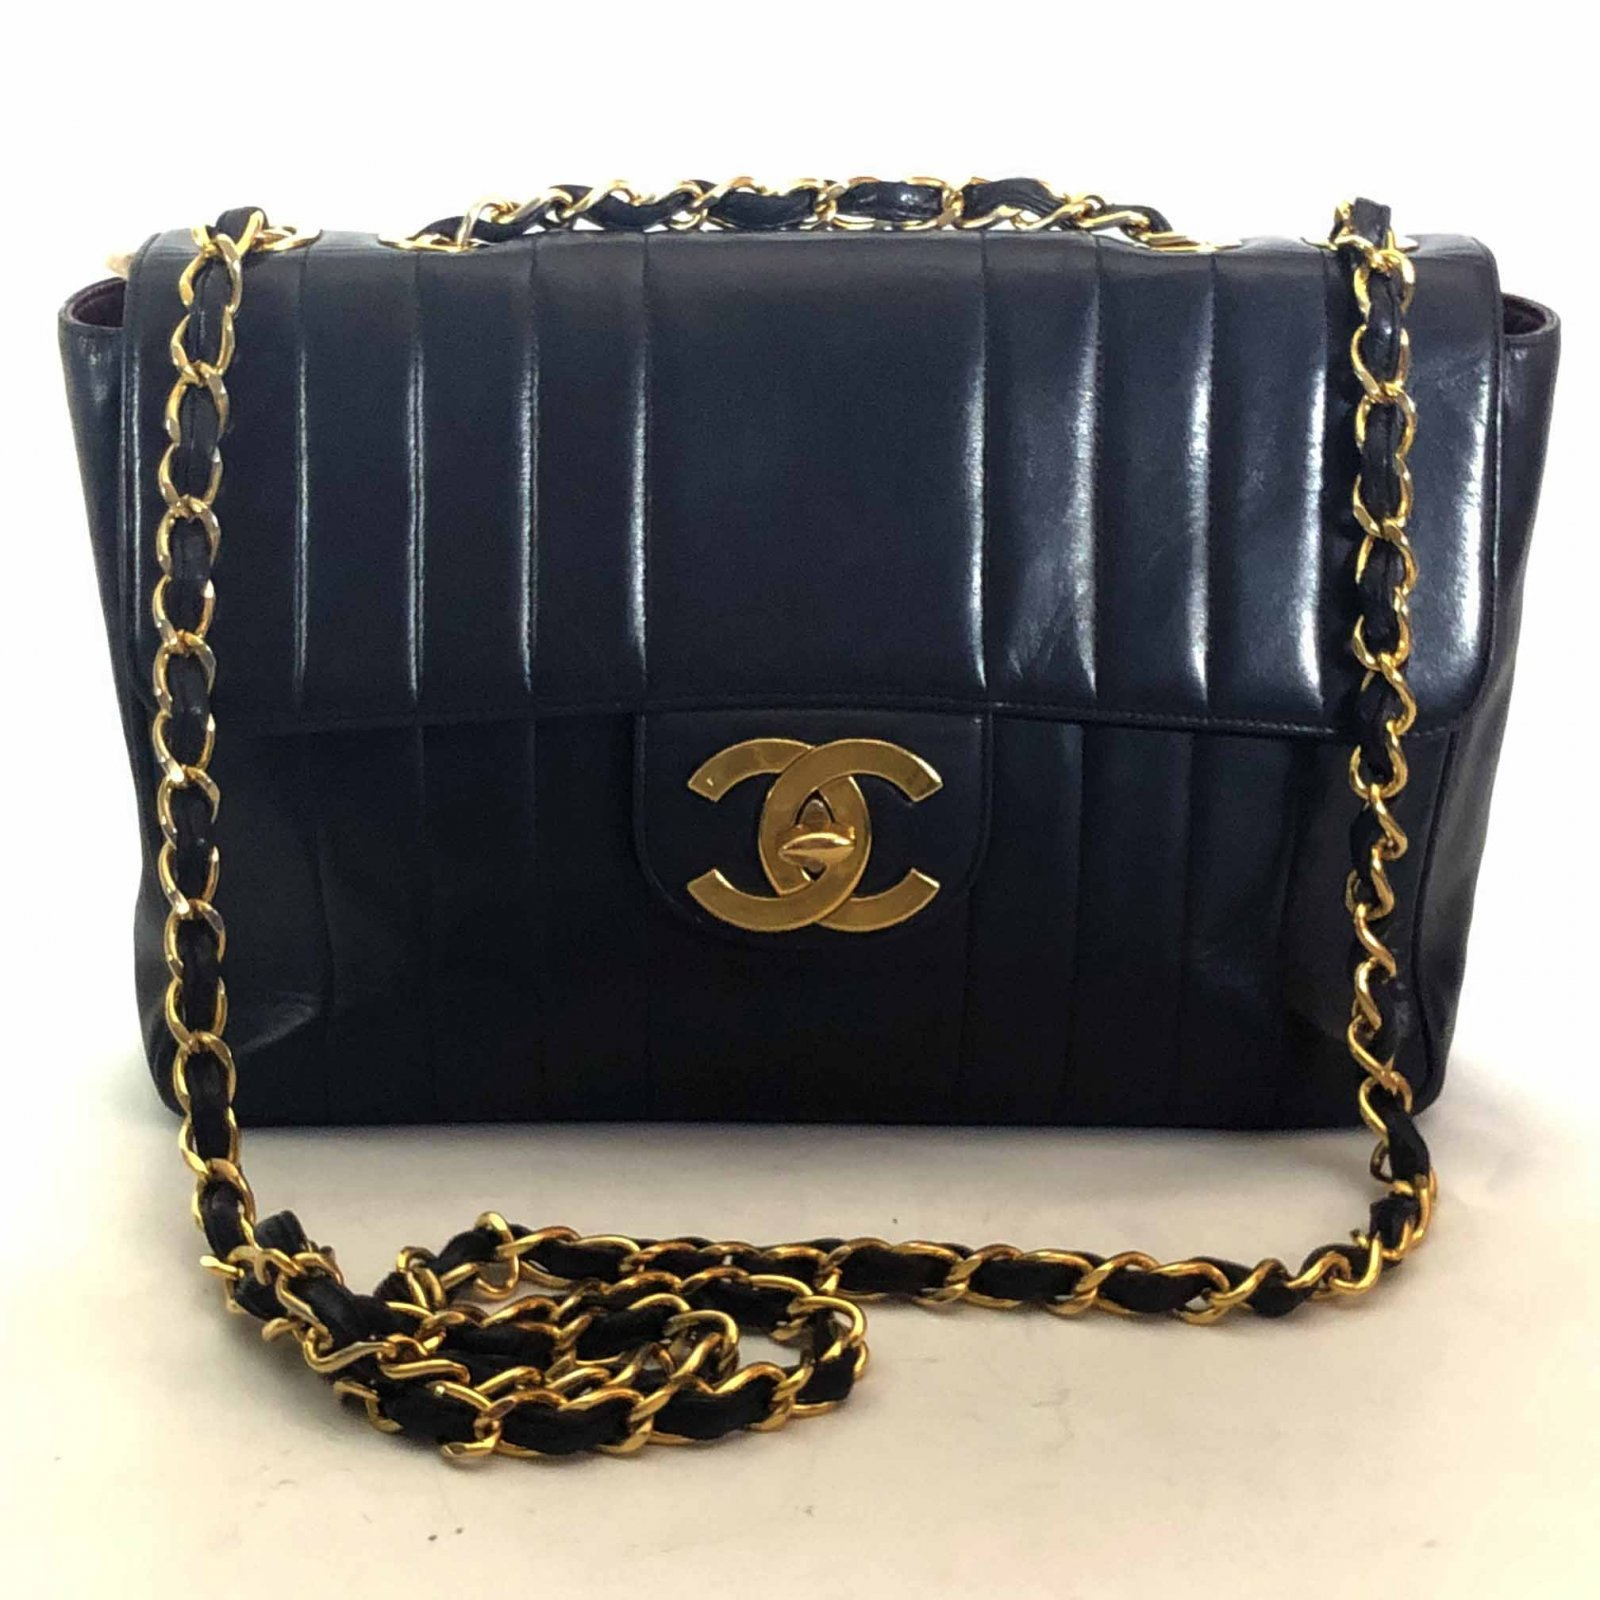 c48191689412 Details about Authentic Chanel Black Veritcal Quilted Lambskin Leather Jumbo  Flap Bag